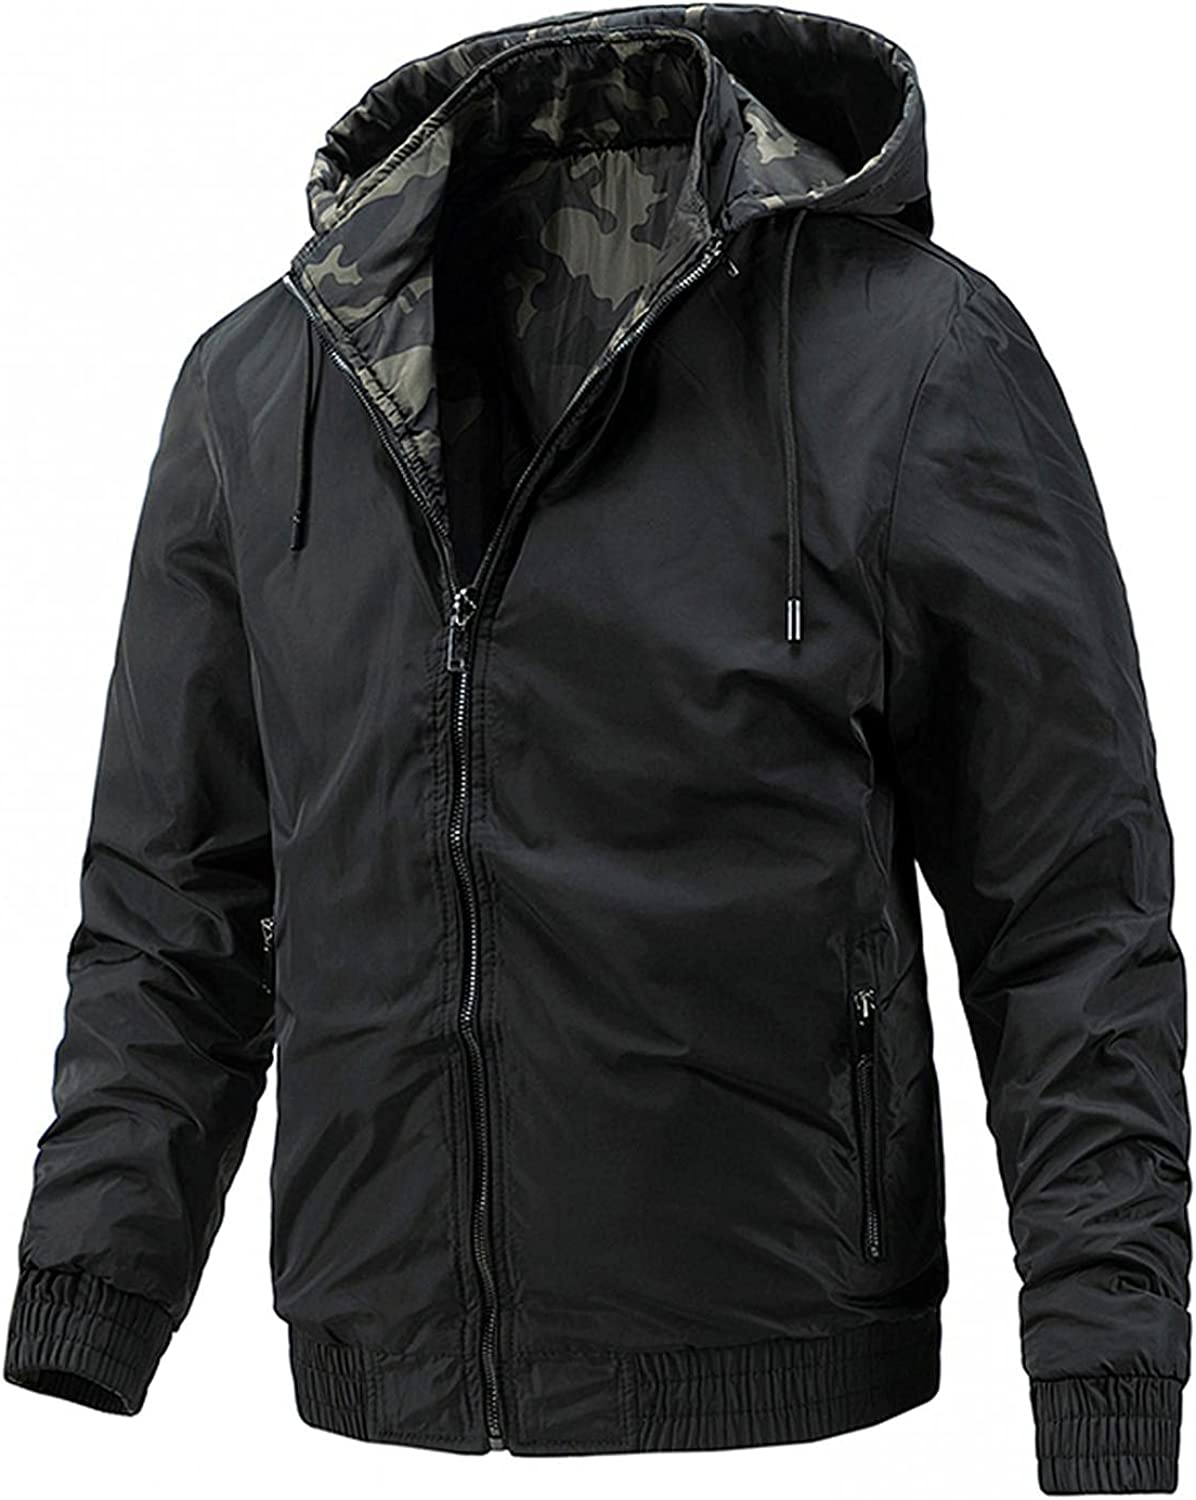 Men Casual Coat Hooded Jacket Both Sides Pockets Autumn&Winter Lightweight Blouse for Outdoor Hiking